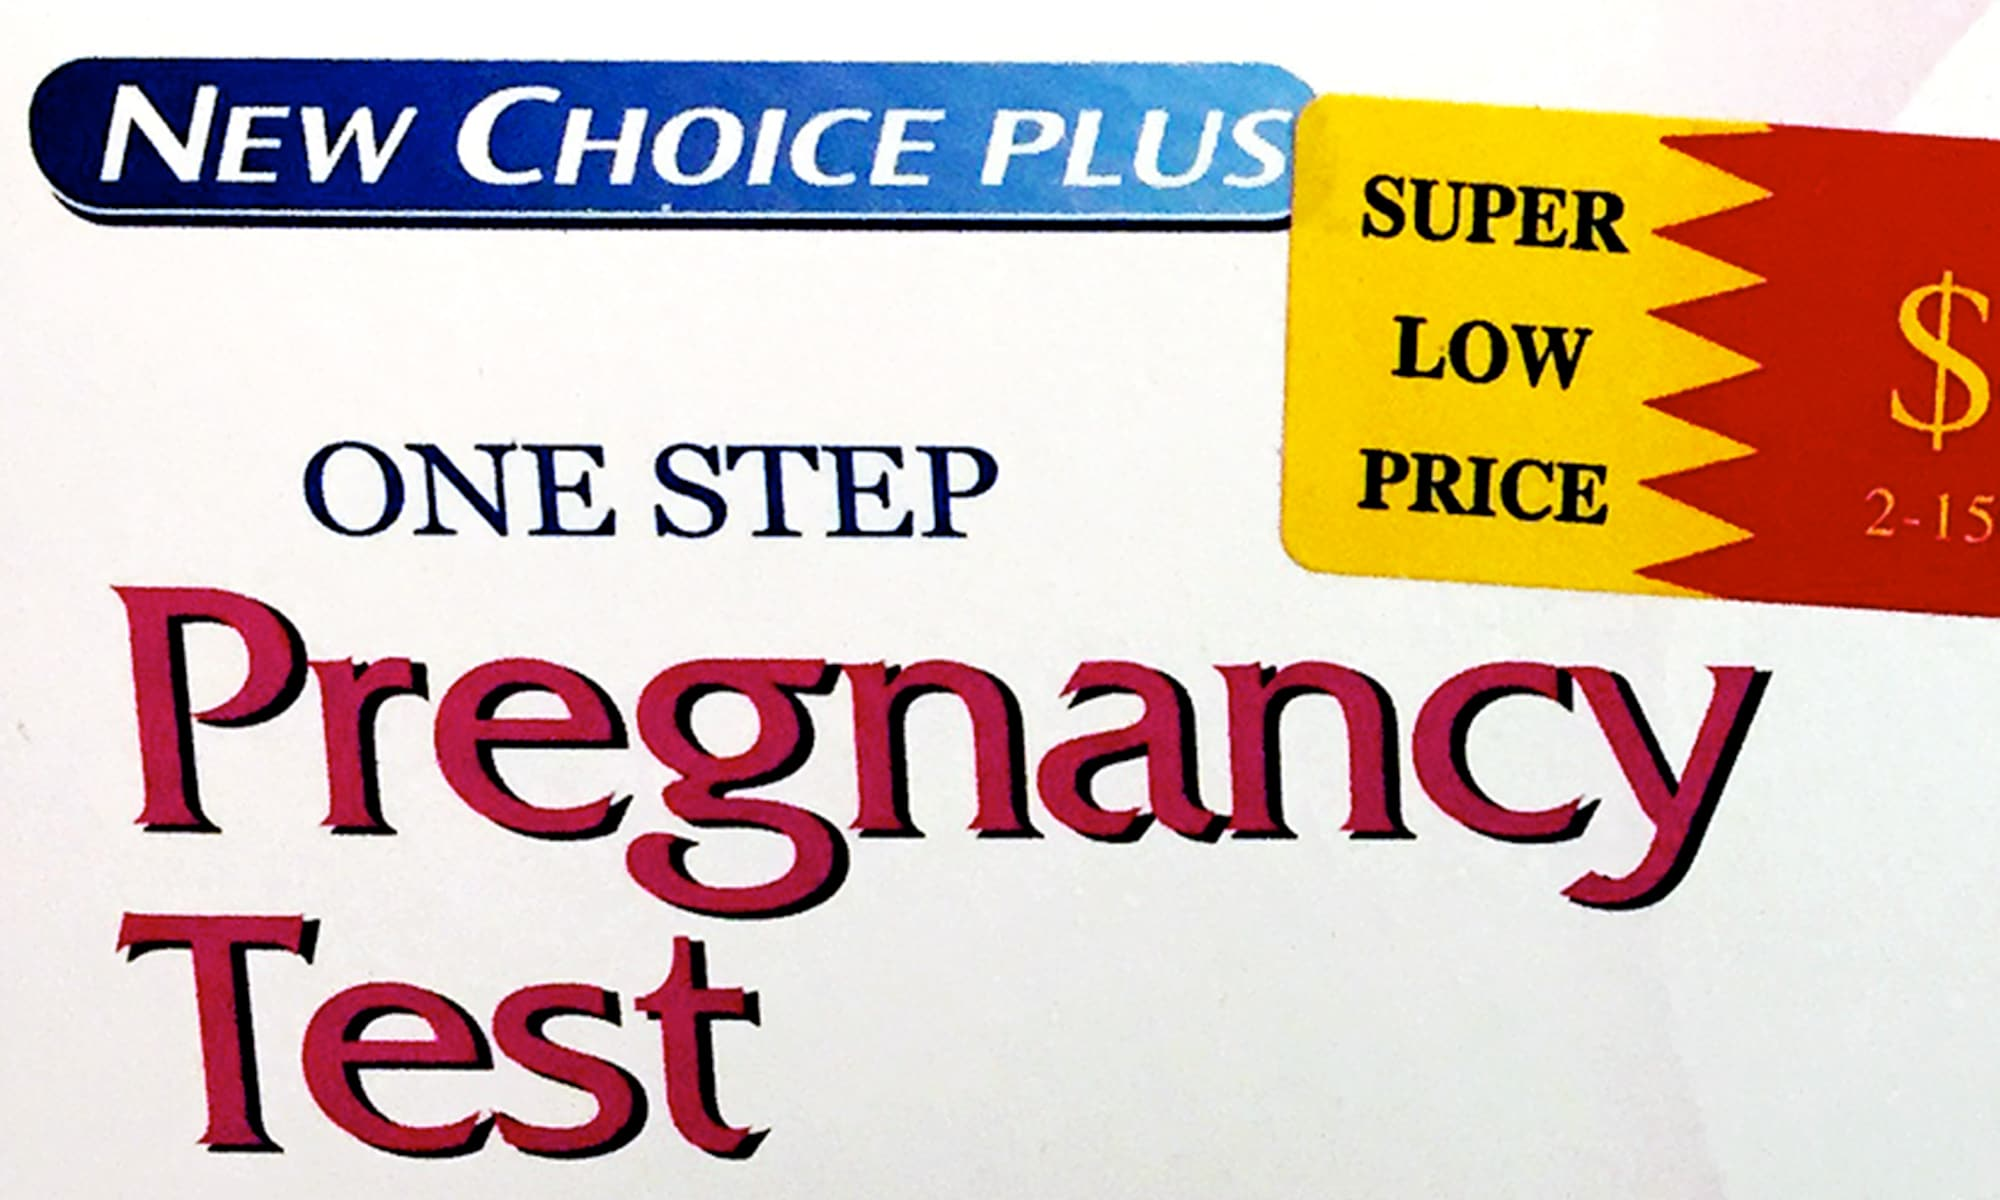 Who makes the New Choice Plus One Step Pregnancy Test?